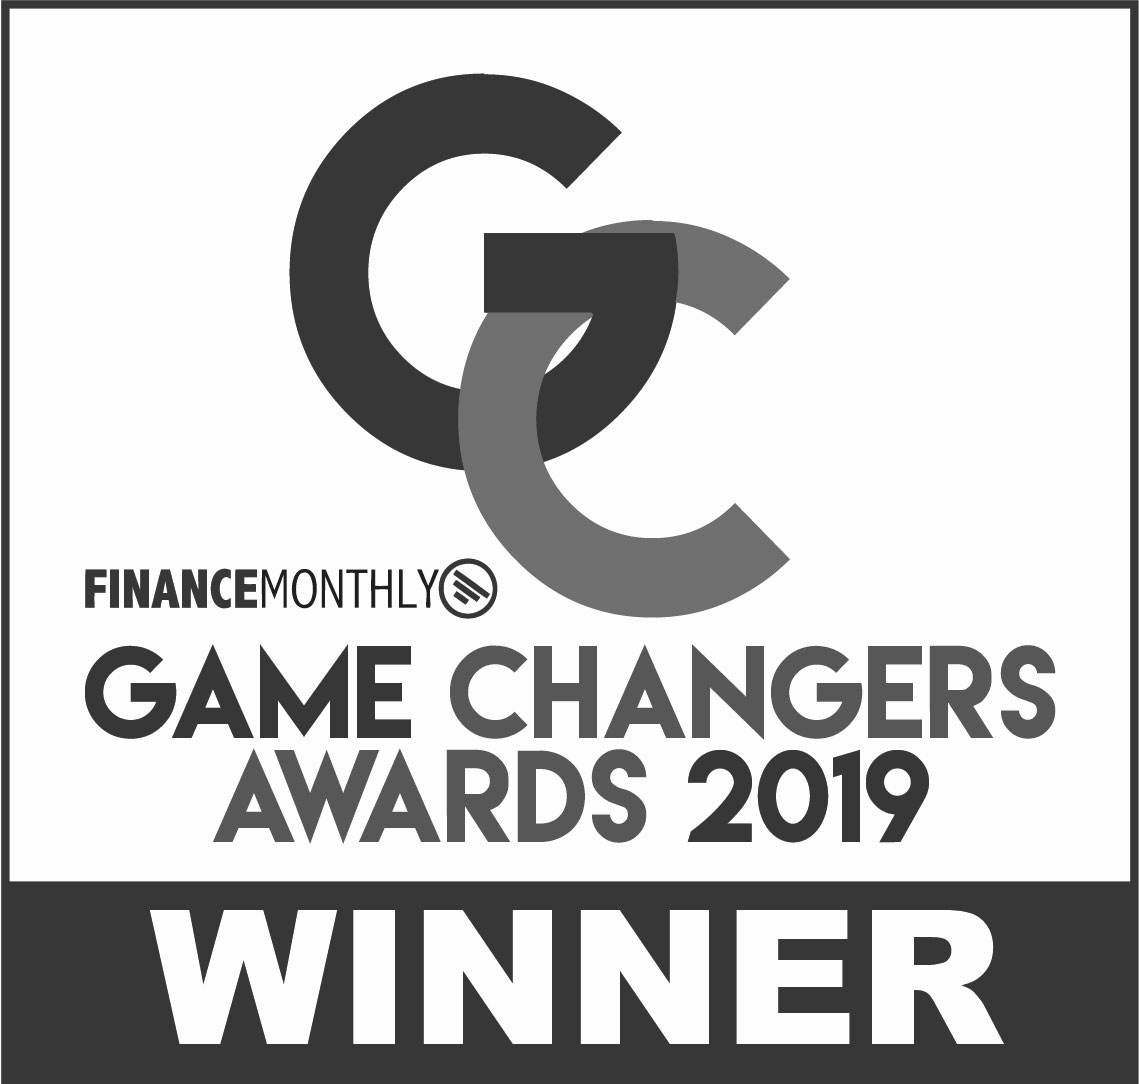 2019 Finance Monthly Game Changers Awards 2019 Winner Logo (Greyscale)